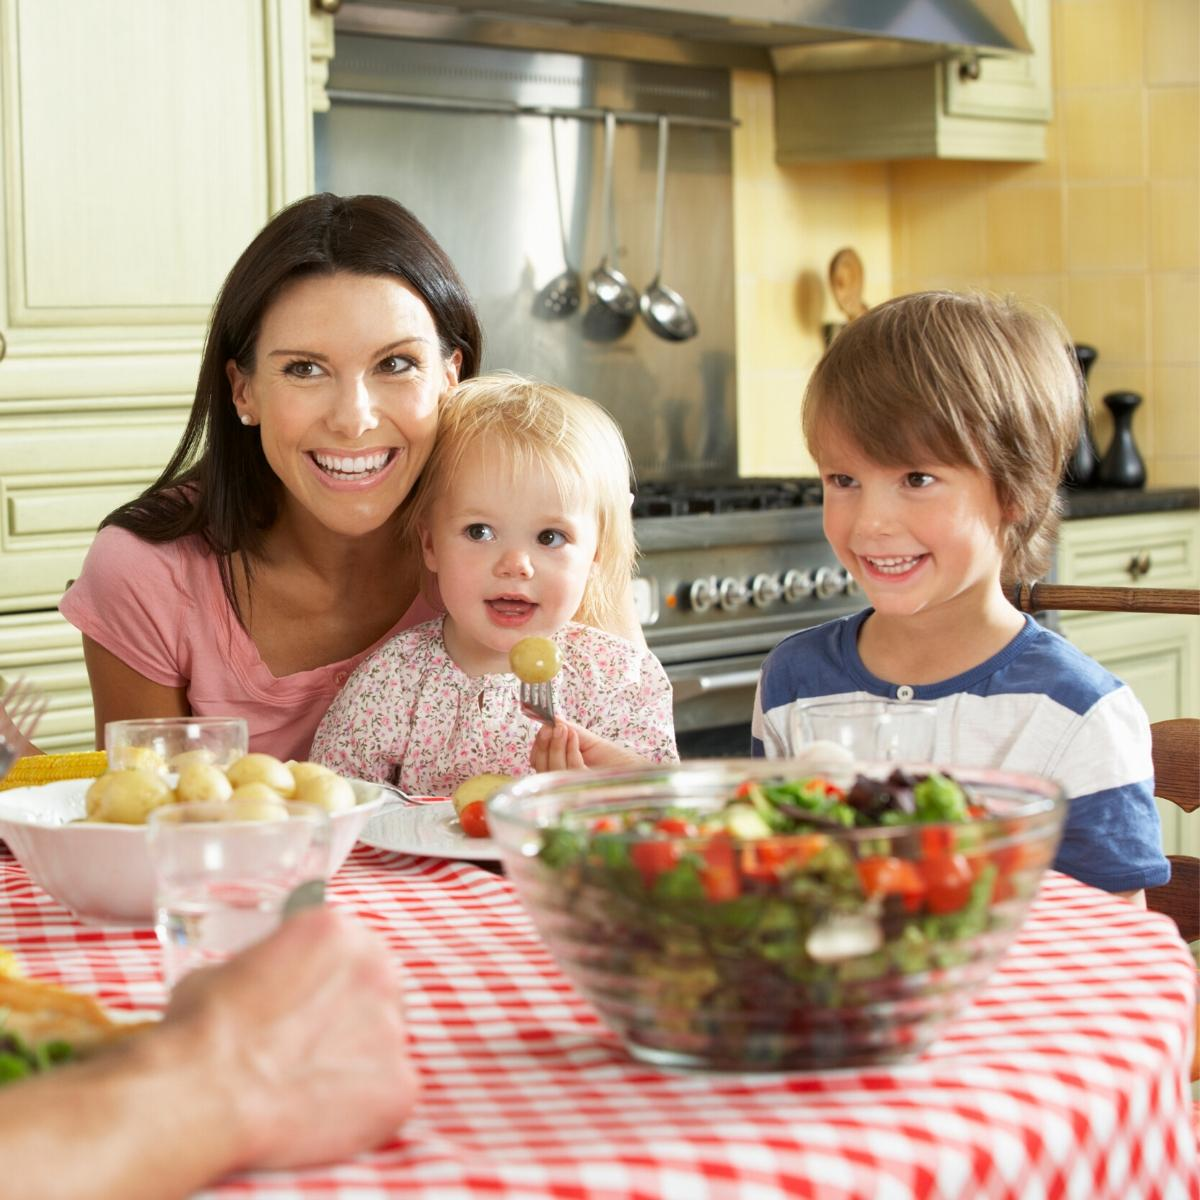 Family eating together - why is this so important for you and the kids